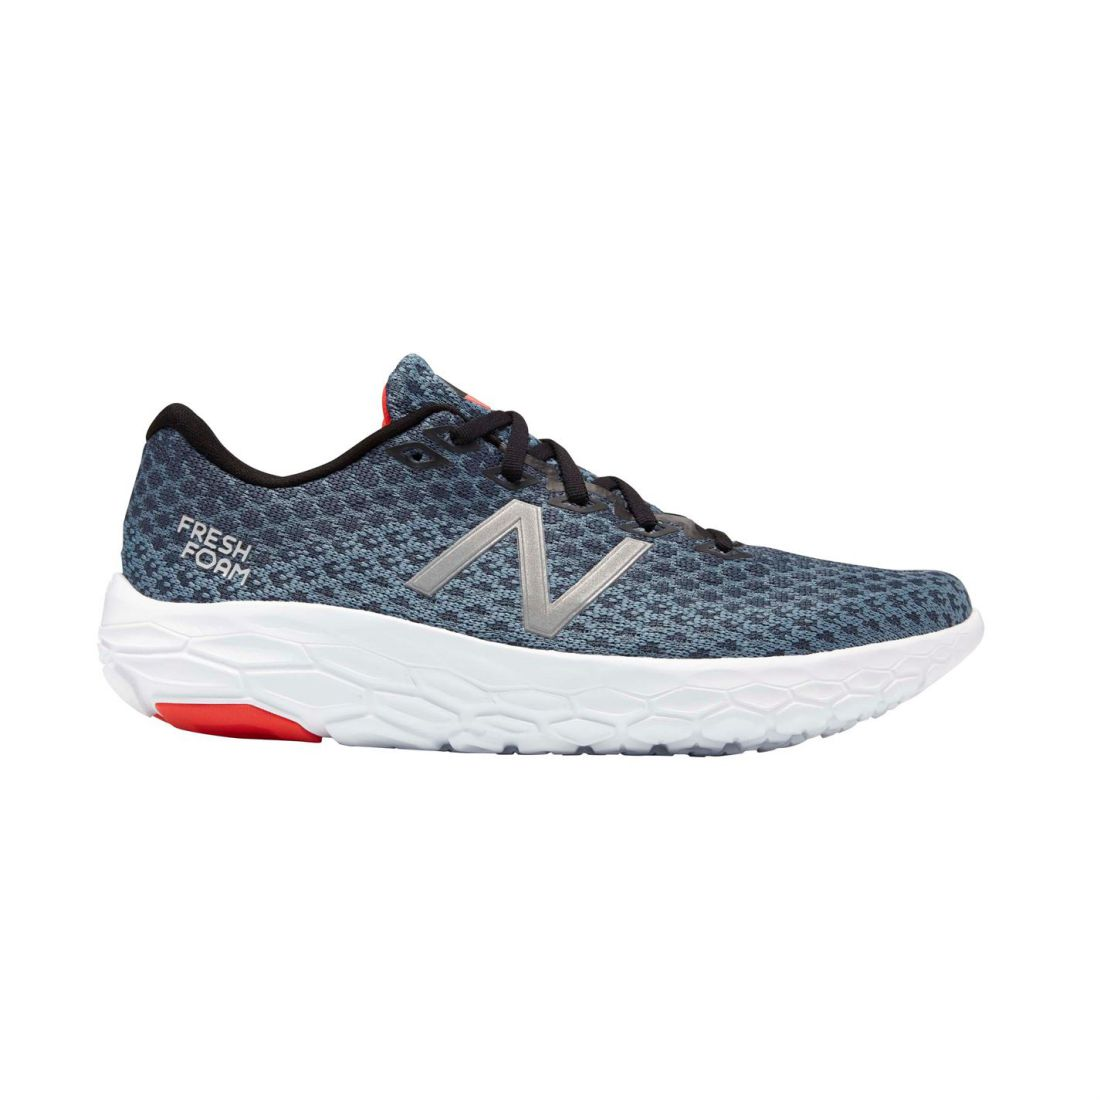 9fcc1b085e91 Image is loading New-Balance-Mens-Beacon-Running-Shoes-Road-Breathable-